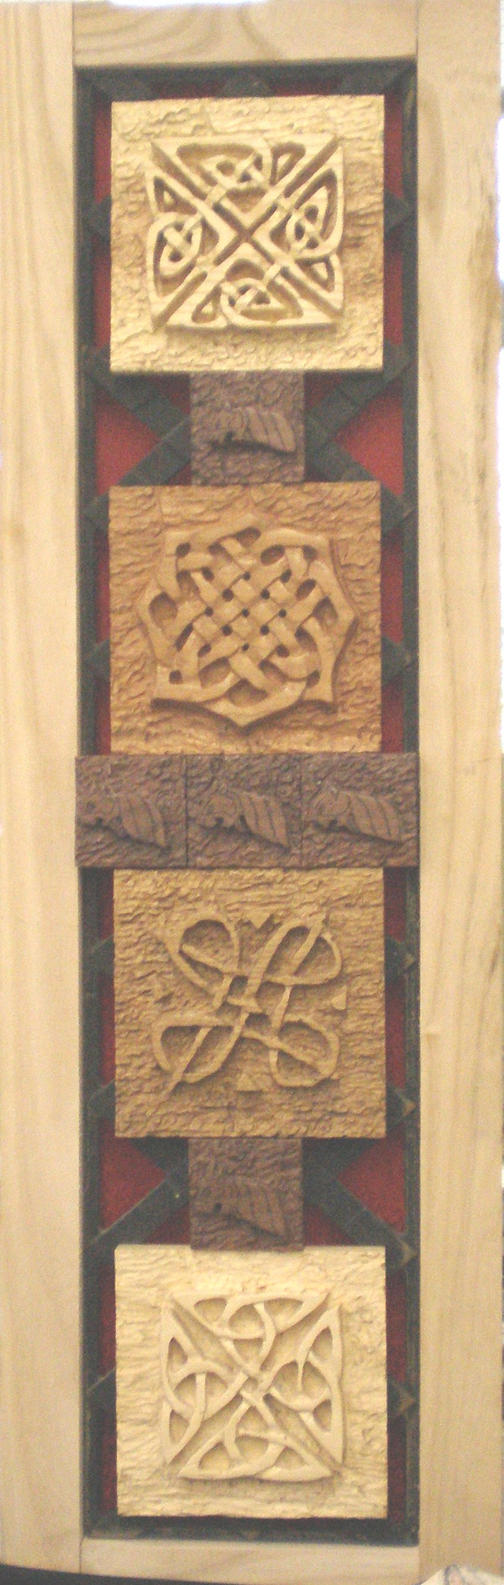 Celtic Knot wood carvings - Laura Hepworth